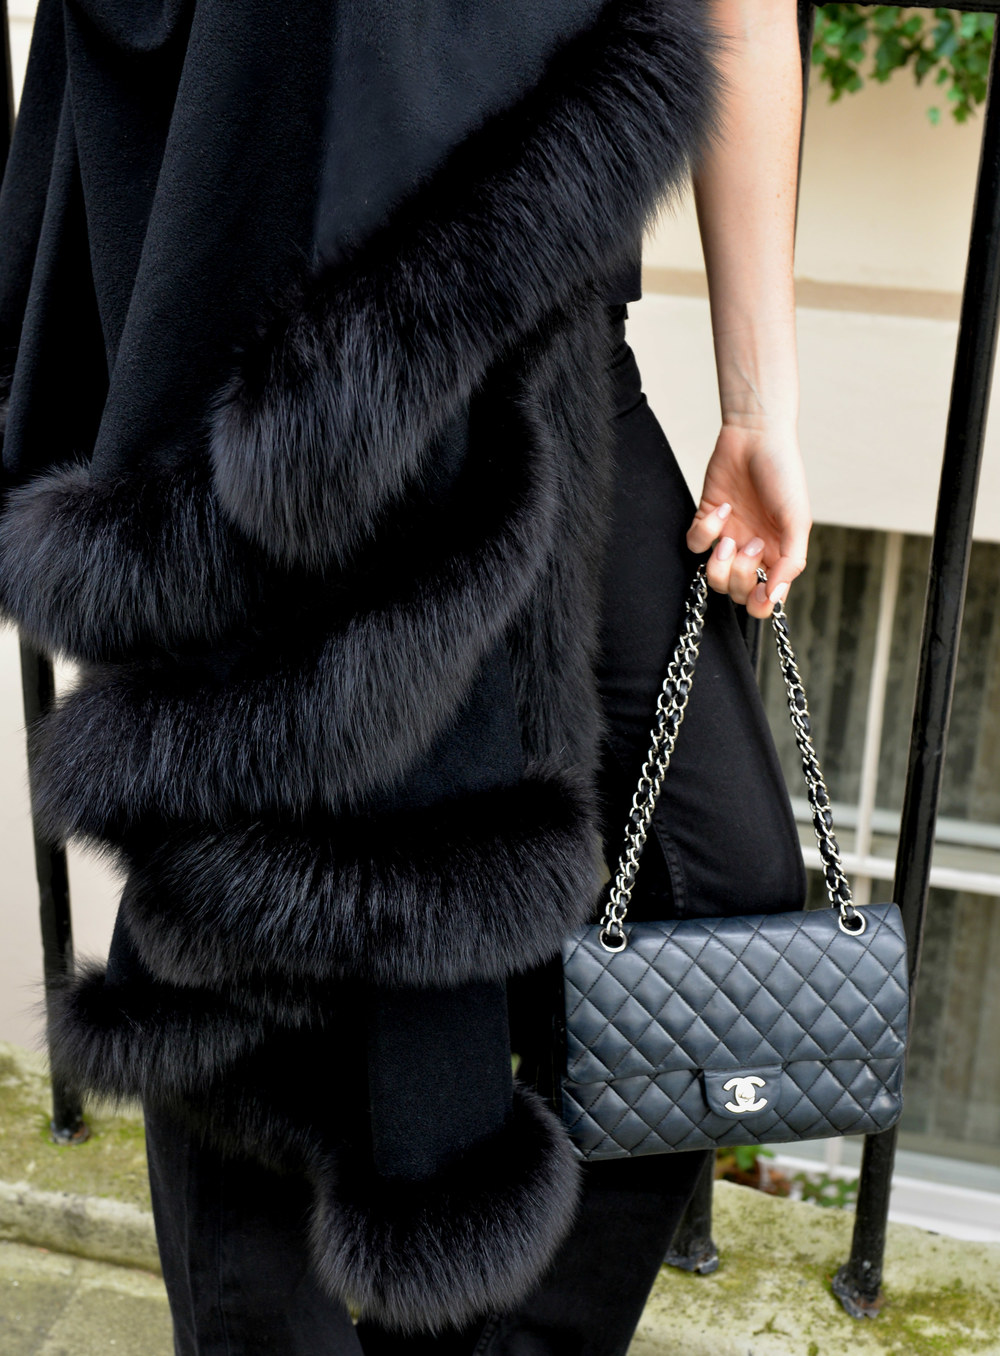 photo (7) #BlackFriday OOTD. Sharp and modern all black look. Ultra soft black cashmere cape with fur. Worn by Fashion Blogger Maureen Sophie Kragt from TheVanillawoods Blog.